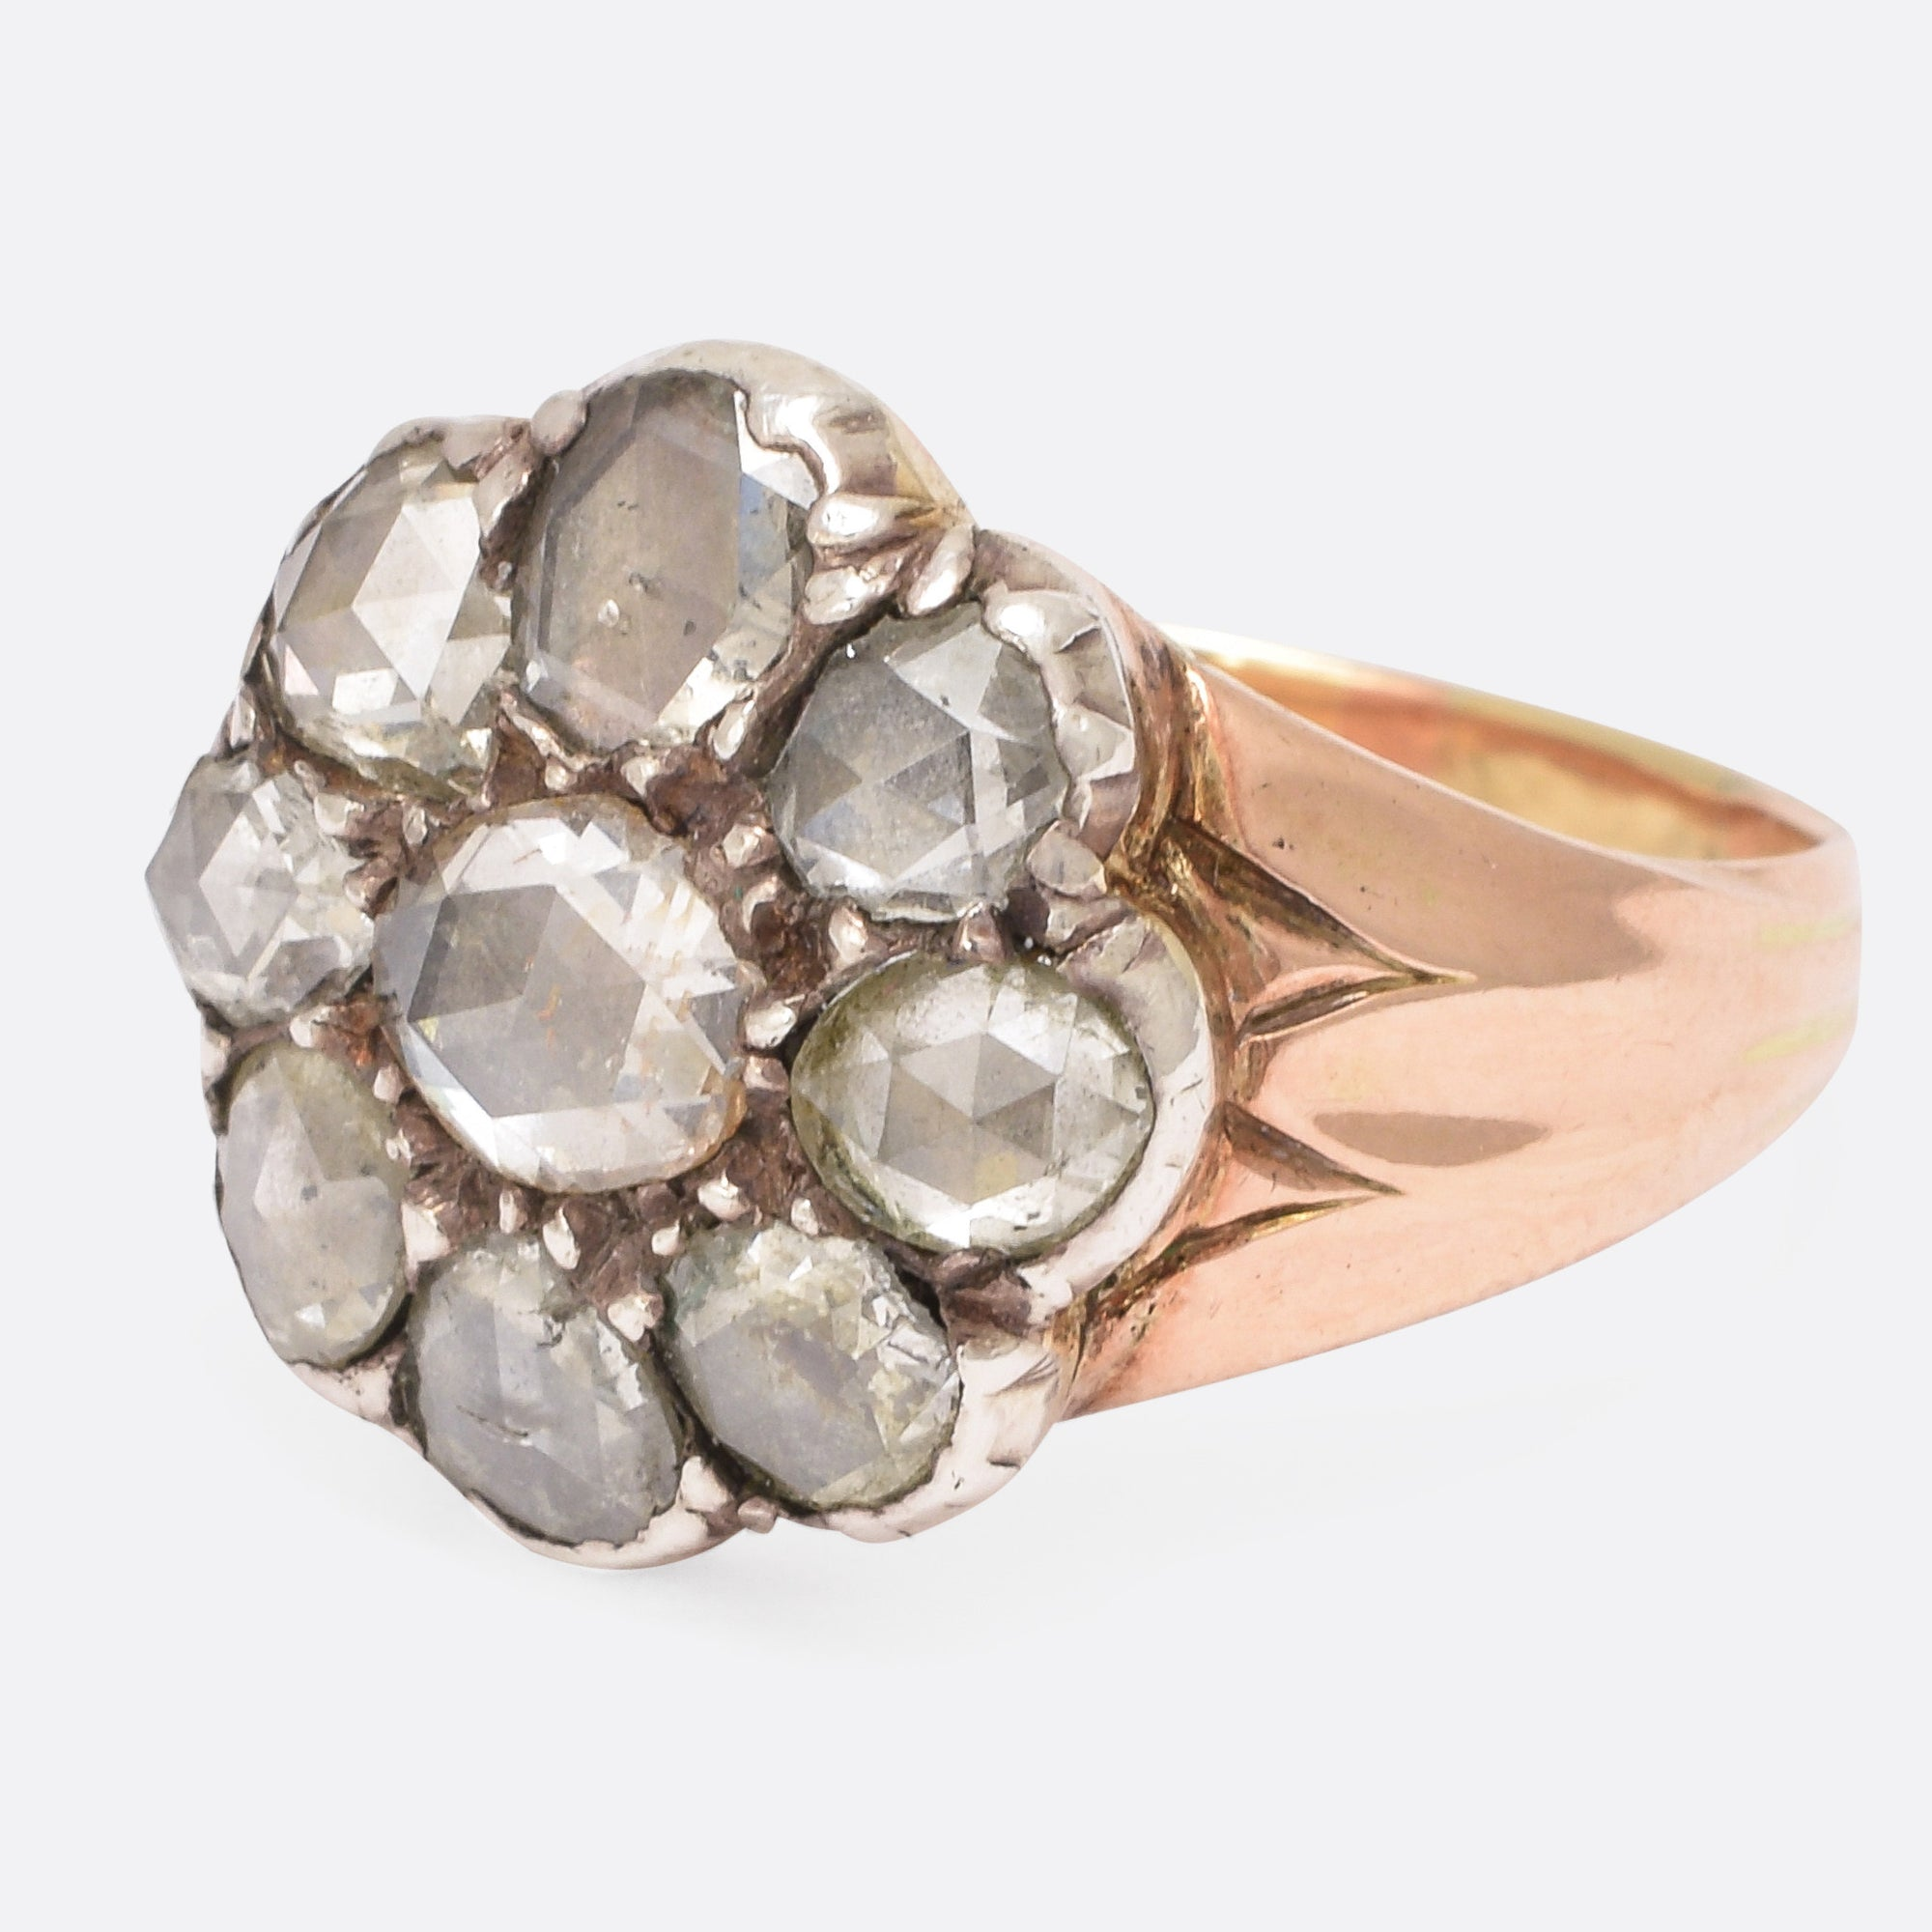 brilliant styles i favorite gold of discover trending engagement some style pin rose rings flower our knew it diamond earth